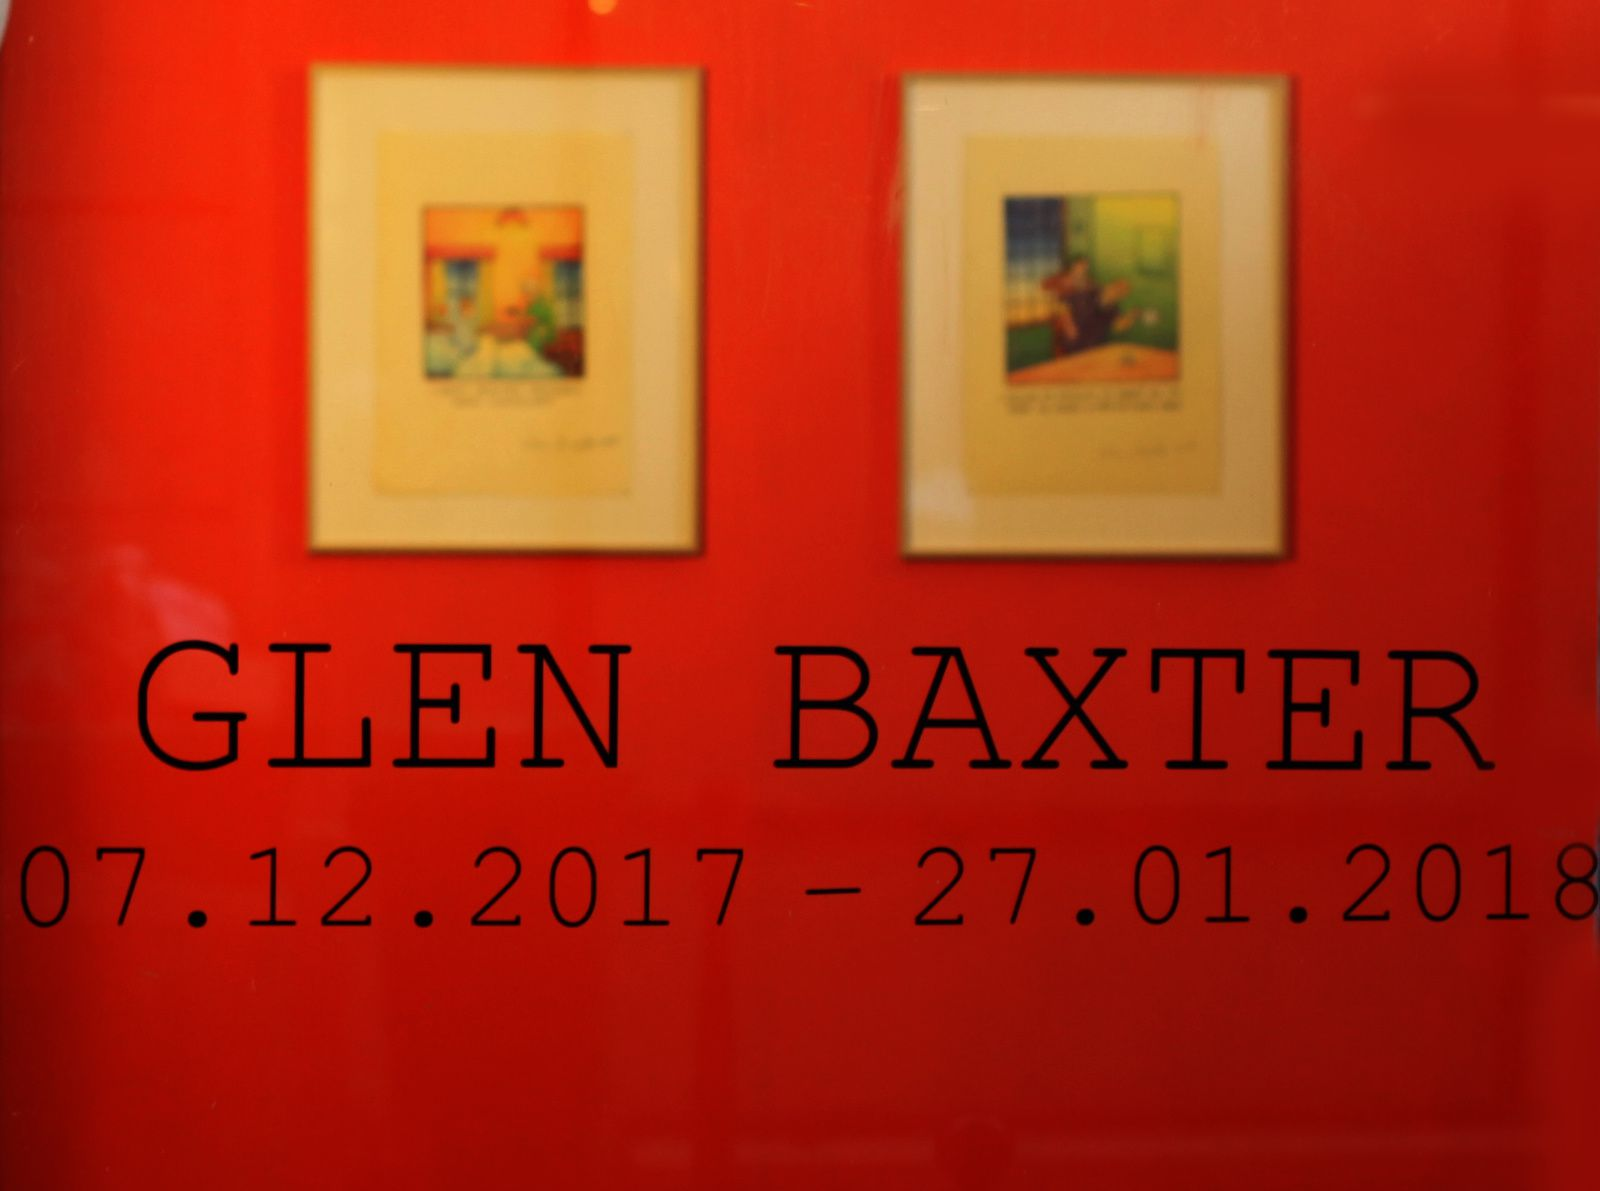 Exposition Illustration  Contemporaine: Glen BAXTER « Recent works »